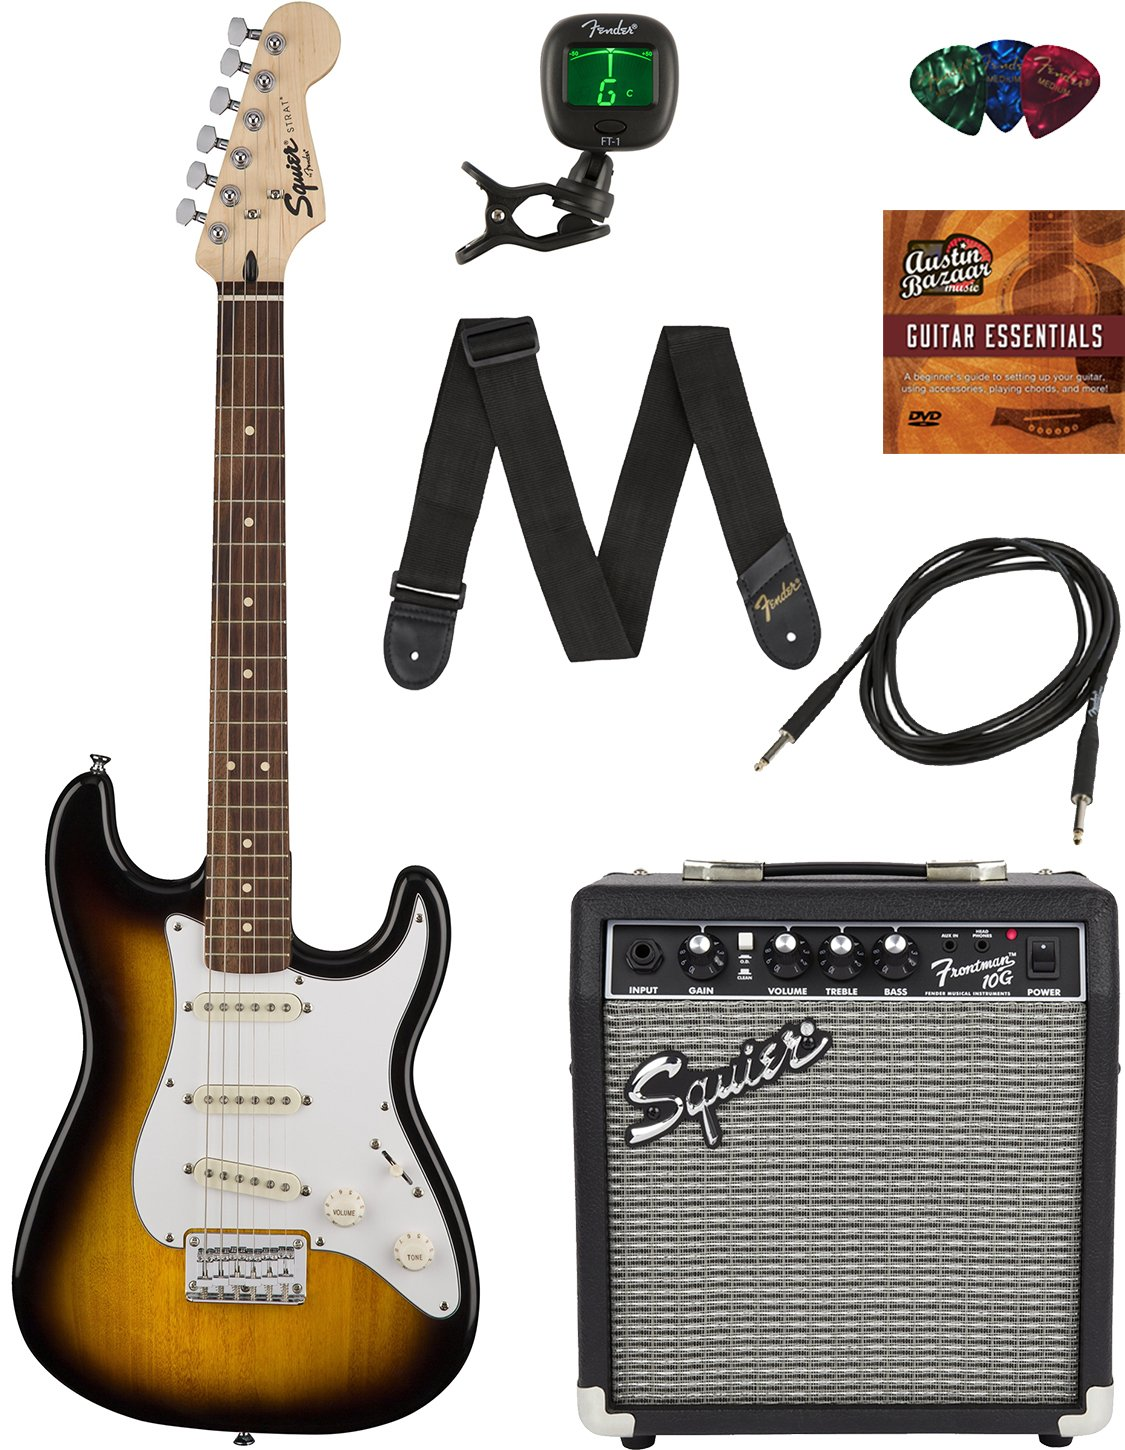 Squier by Fender Stratocaster Pack with Frontman 10G Amp, Cable, Strap, Picks, and Online Lessons - Brown Sunburst Bundle with Austin Bazaar Instructional DVD by Fender